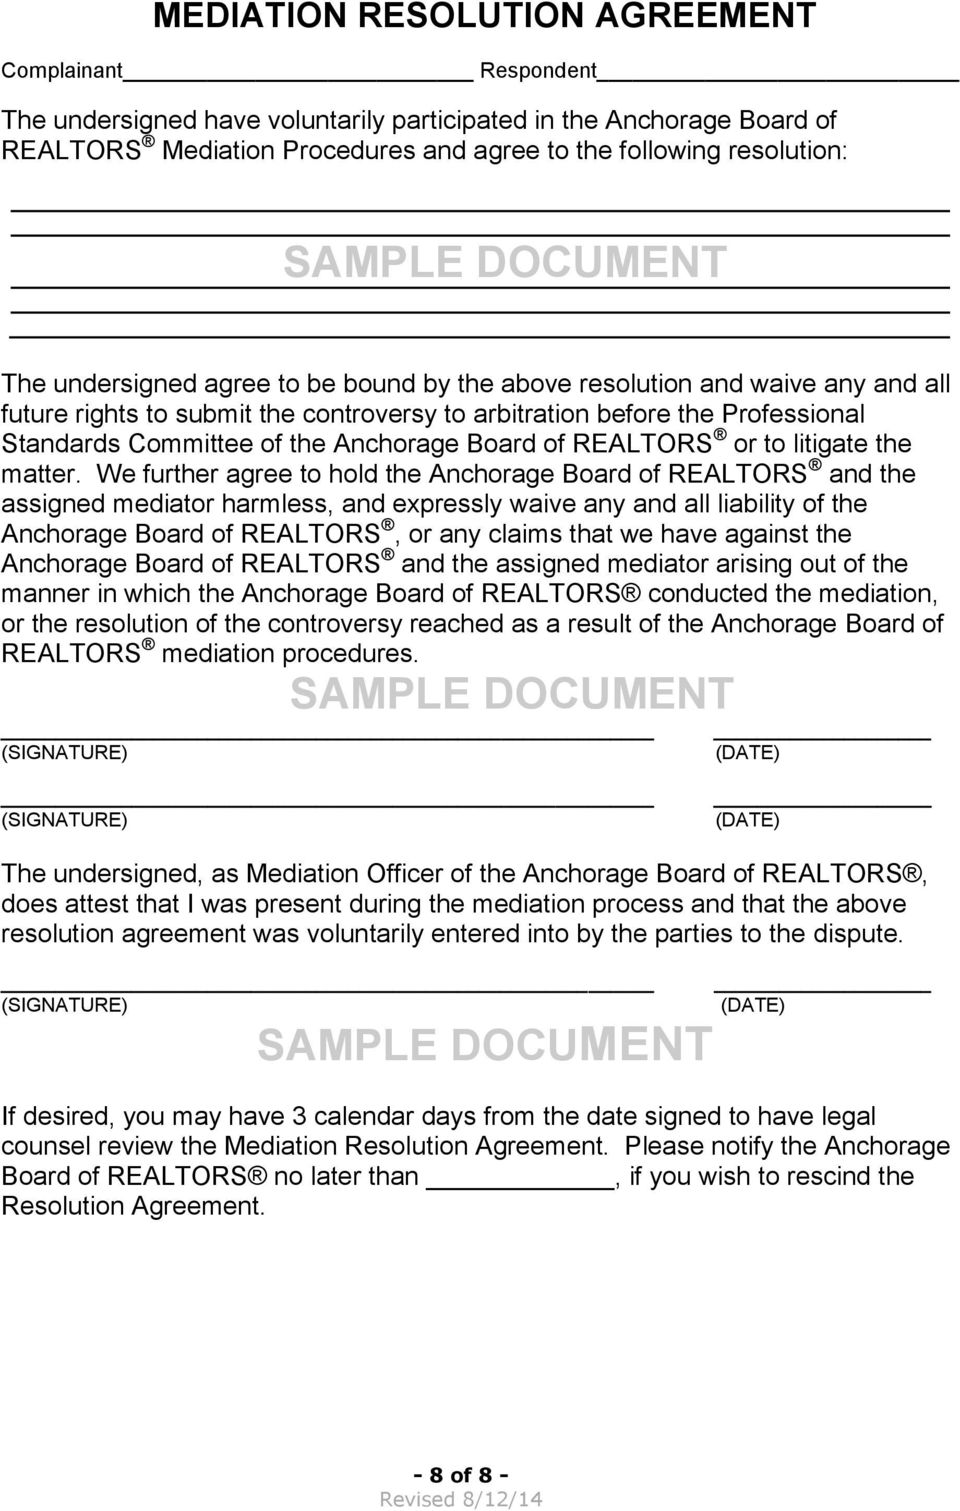 the Anchorage Board of REALTORS or to litigate the matter.